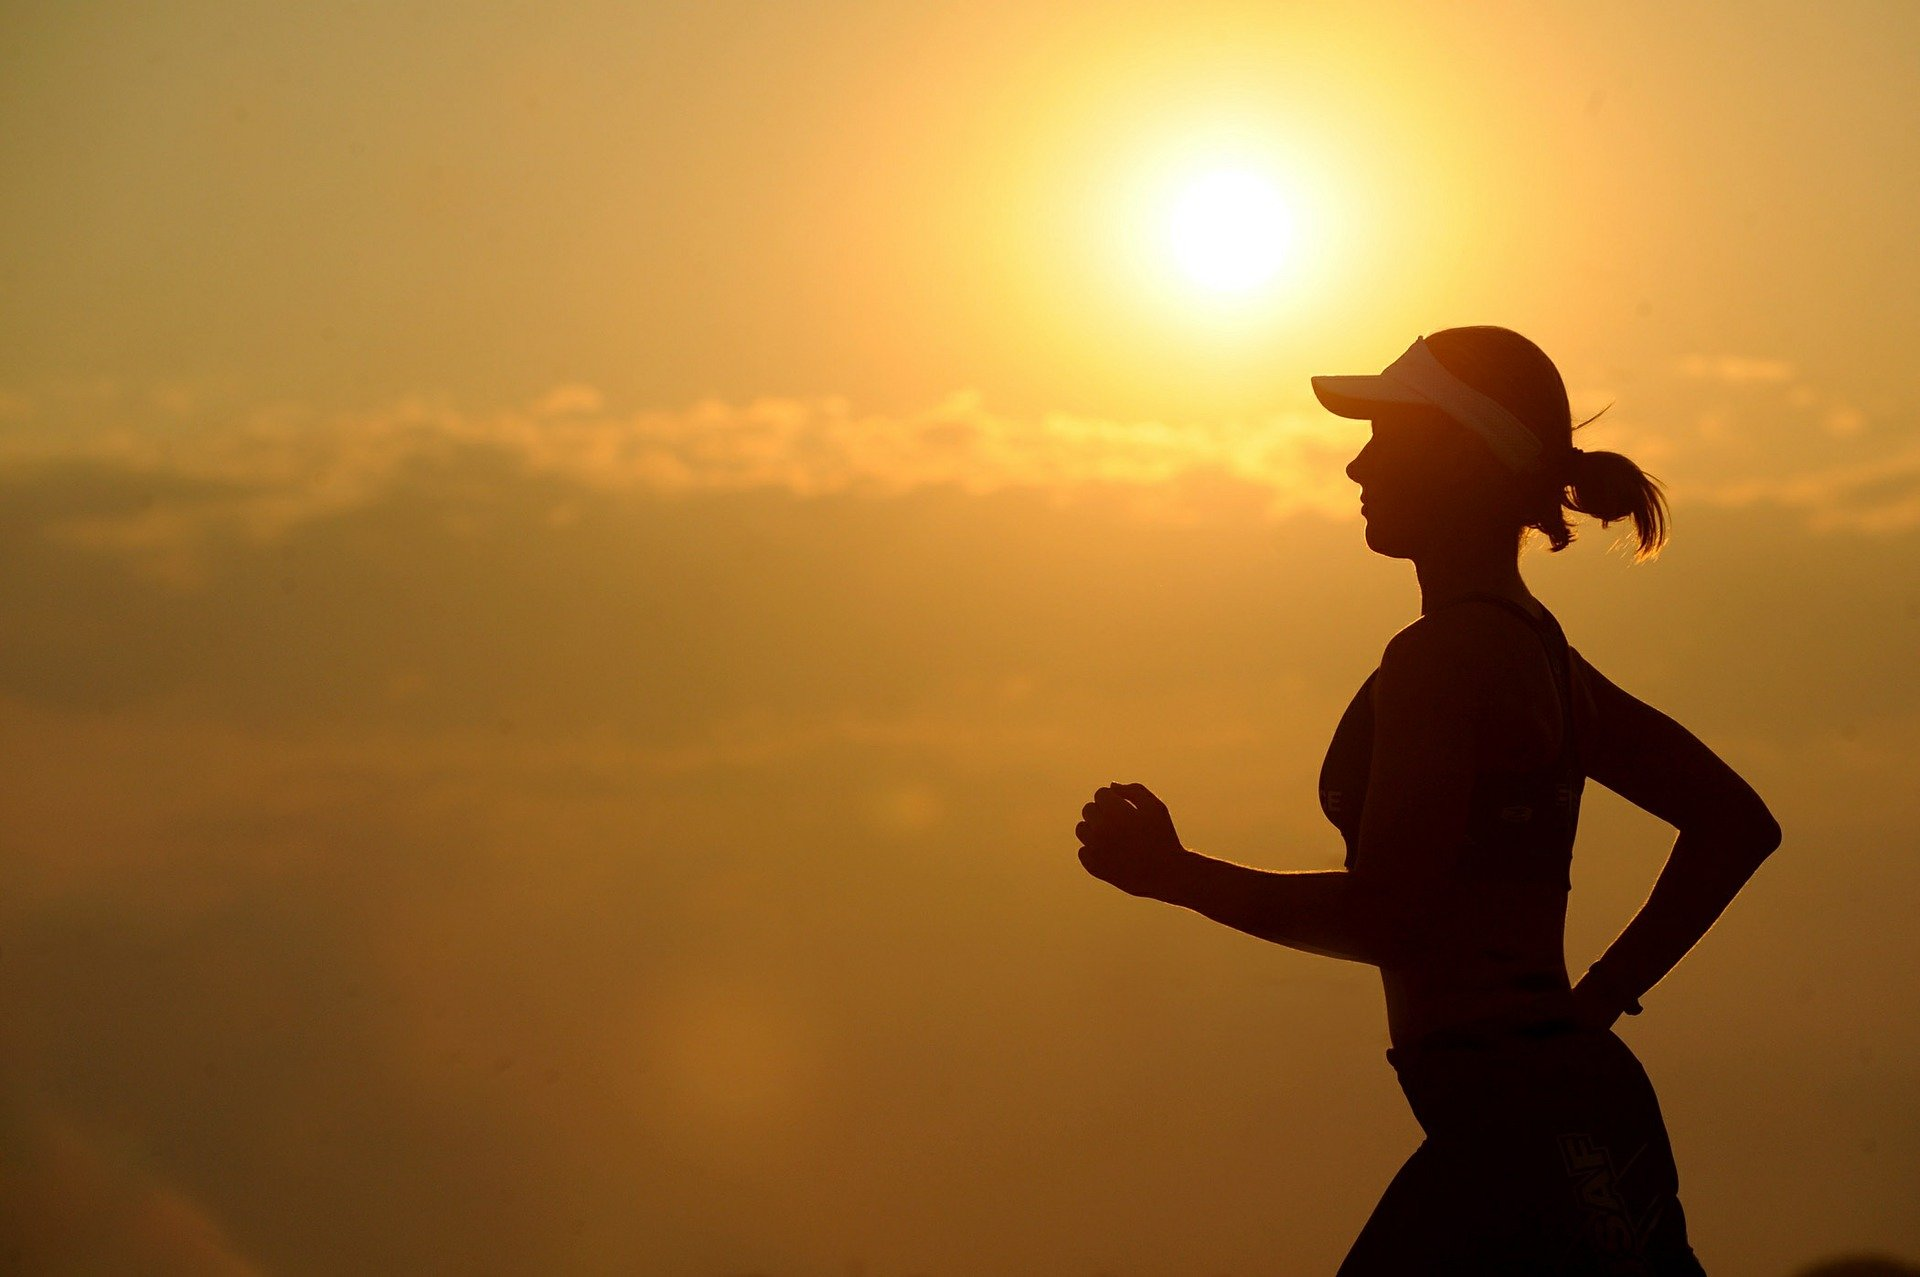 thinking beyond yourself can make you more open to healthy lifestyle